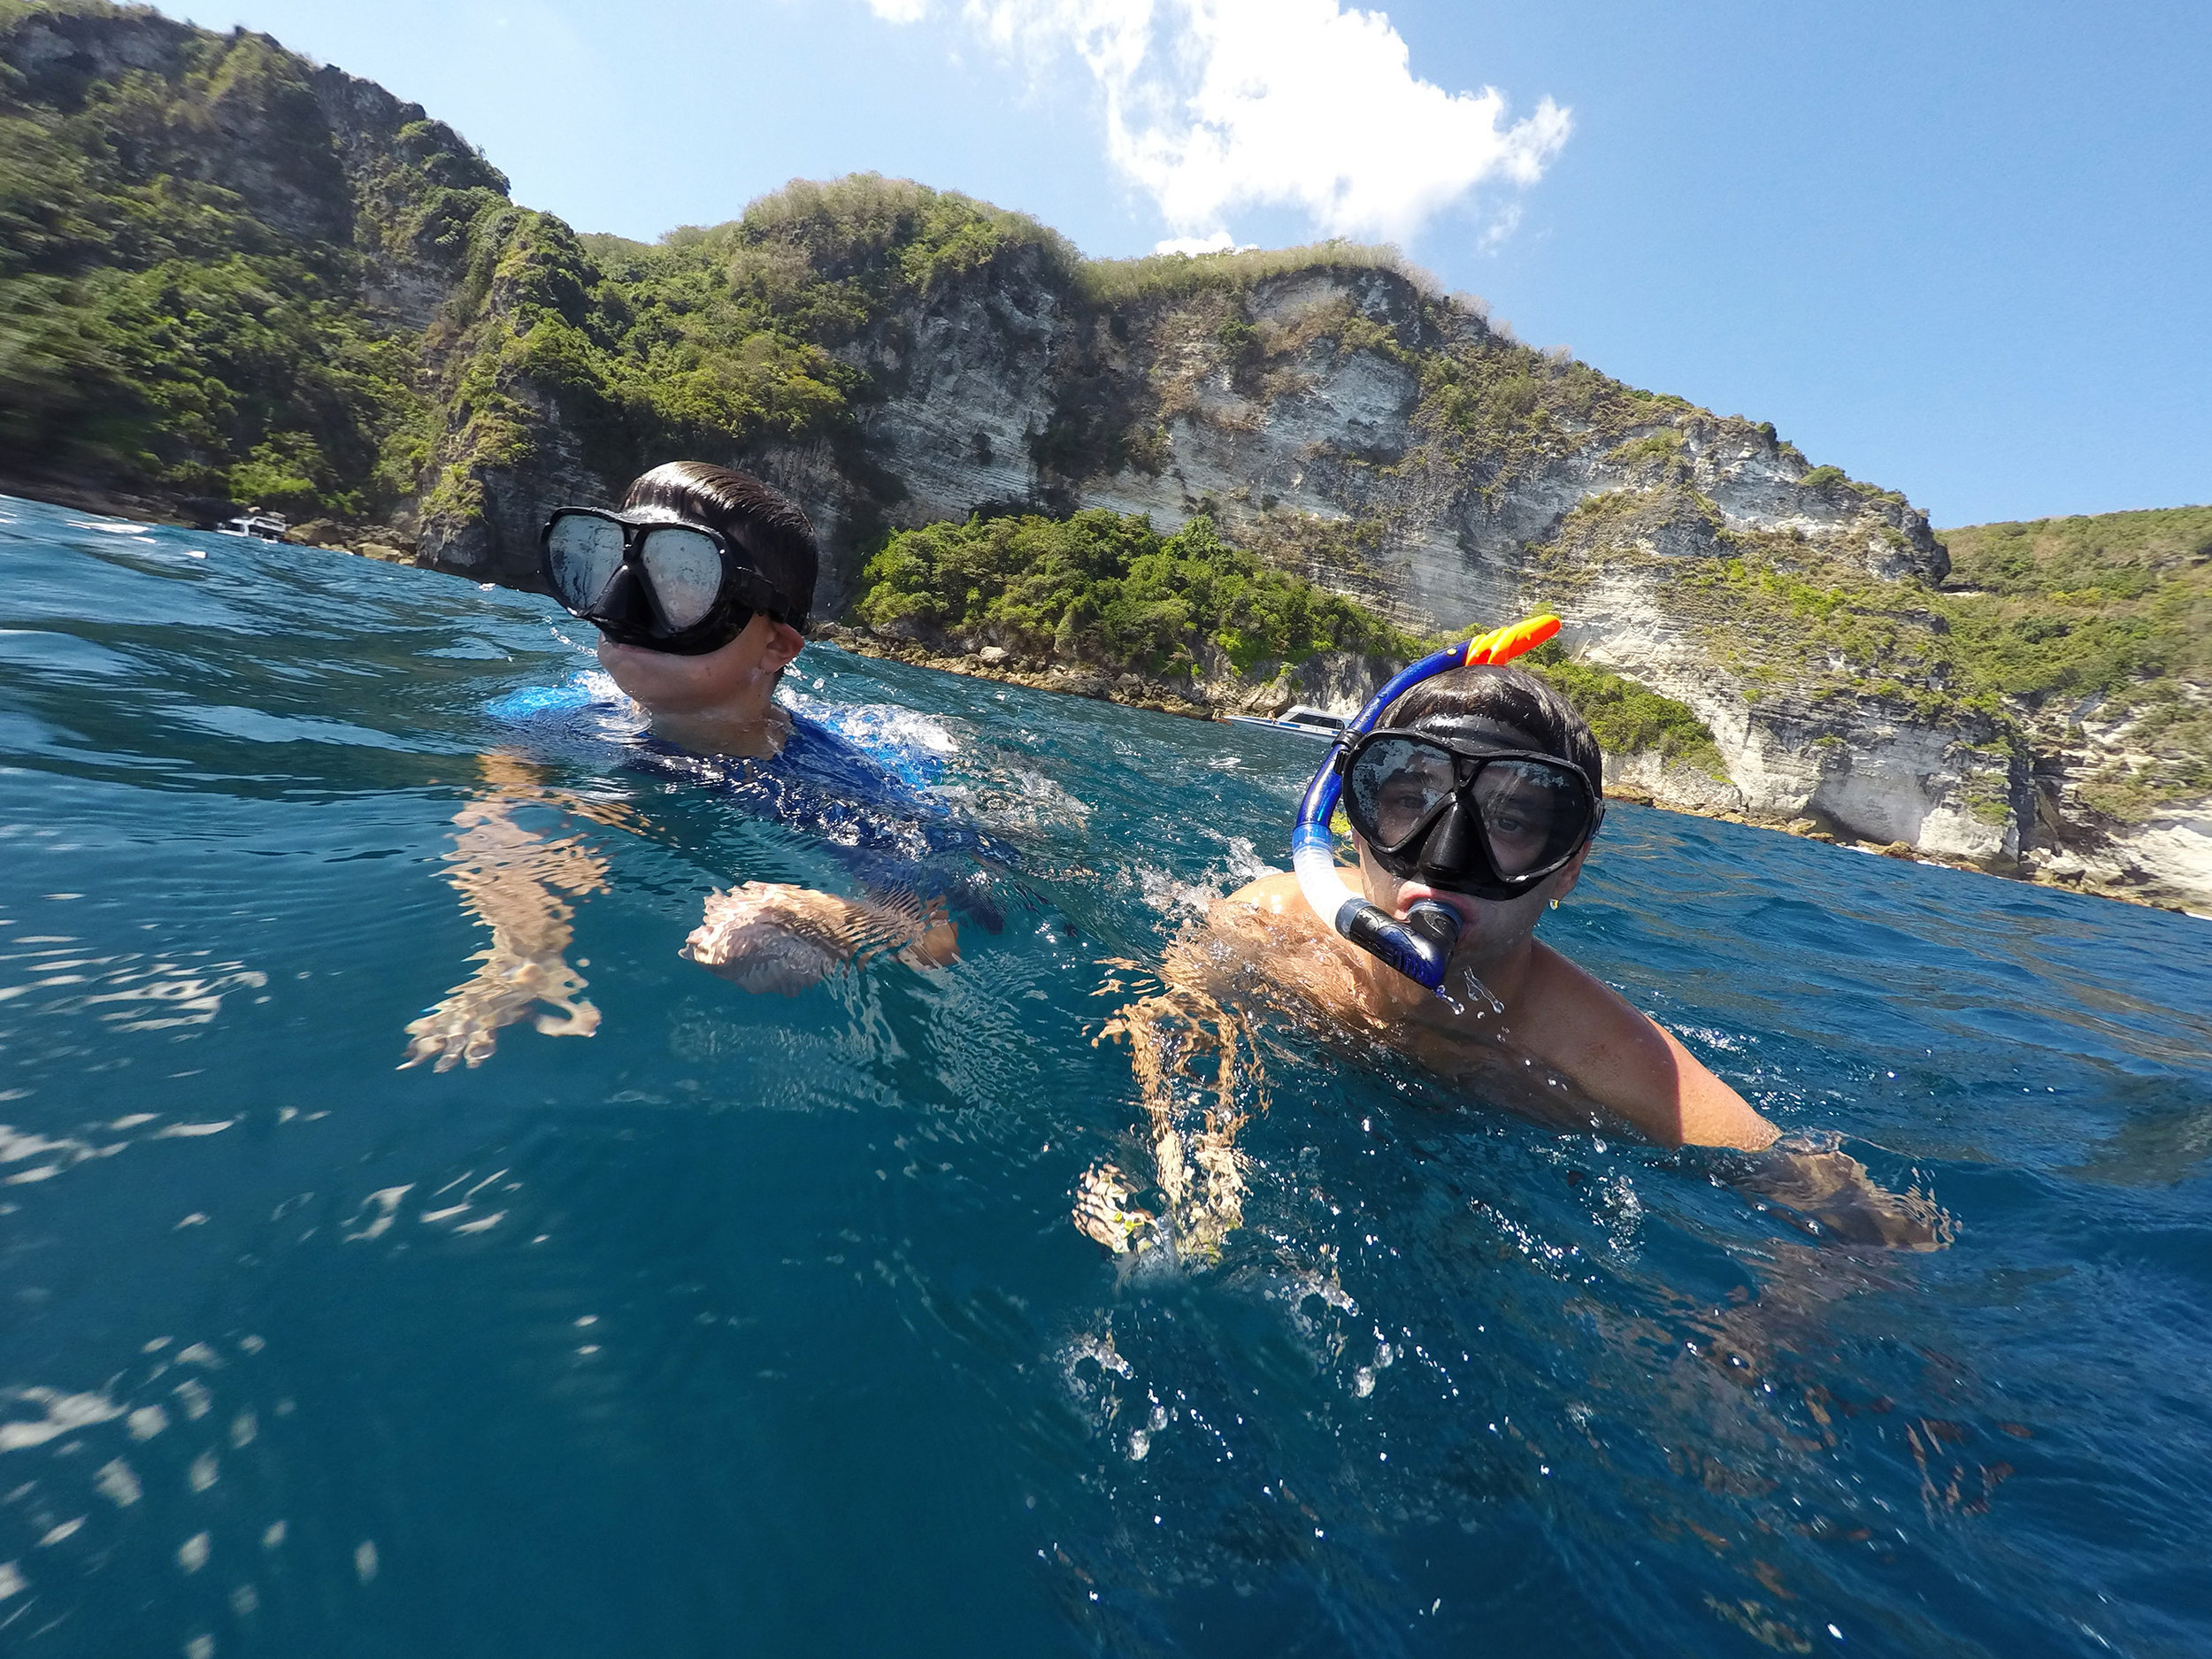 Snorkel with Dolphins - Start your recovery plan by snorkeling in the crystal clear blue waters and watching dolphins swim just feet away.